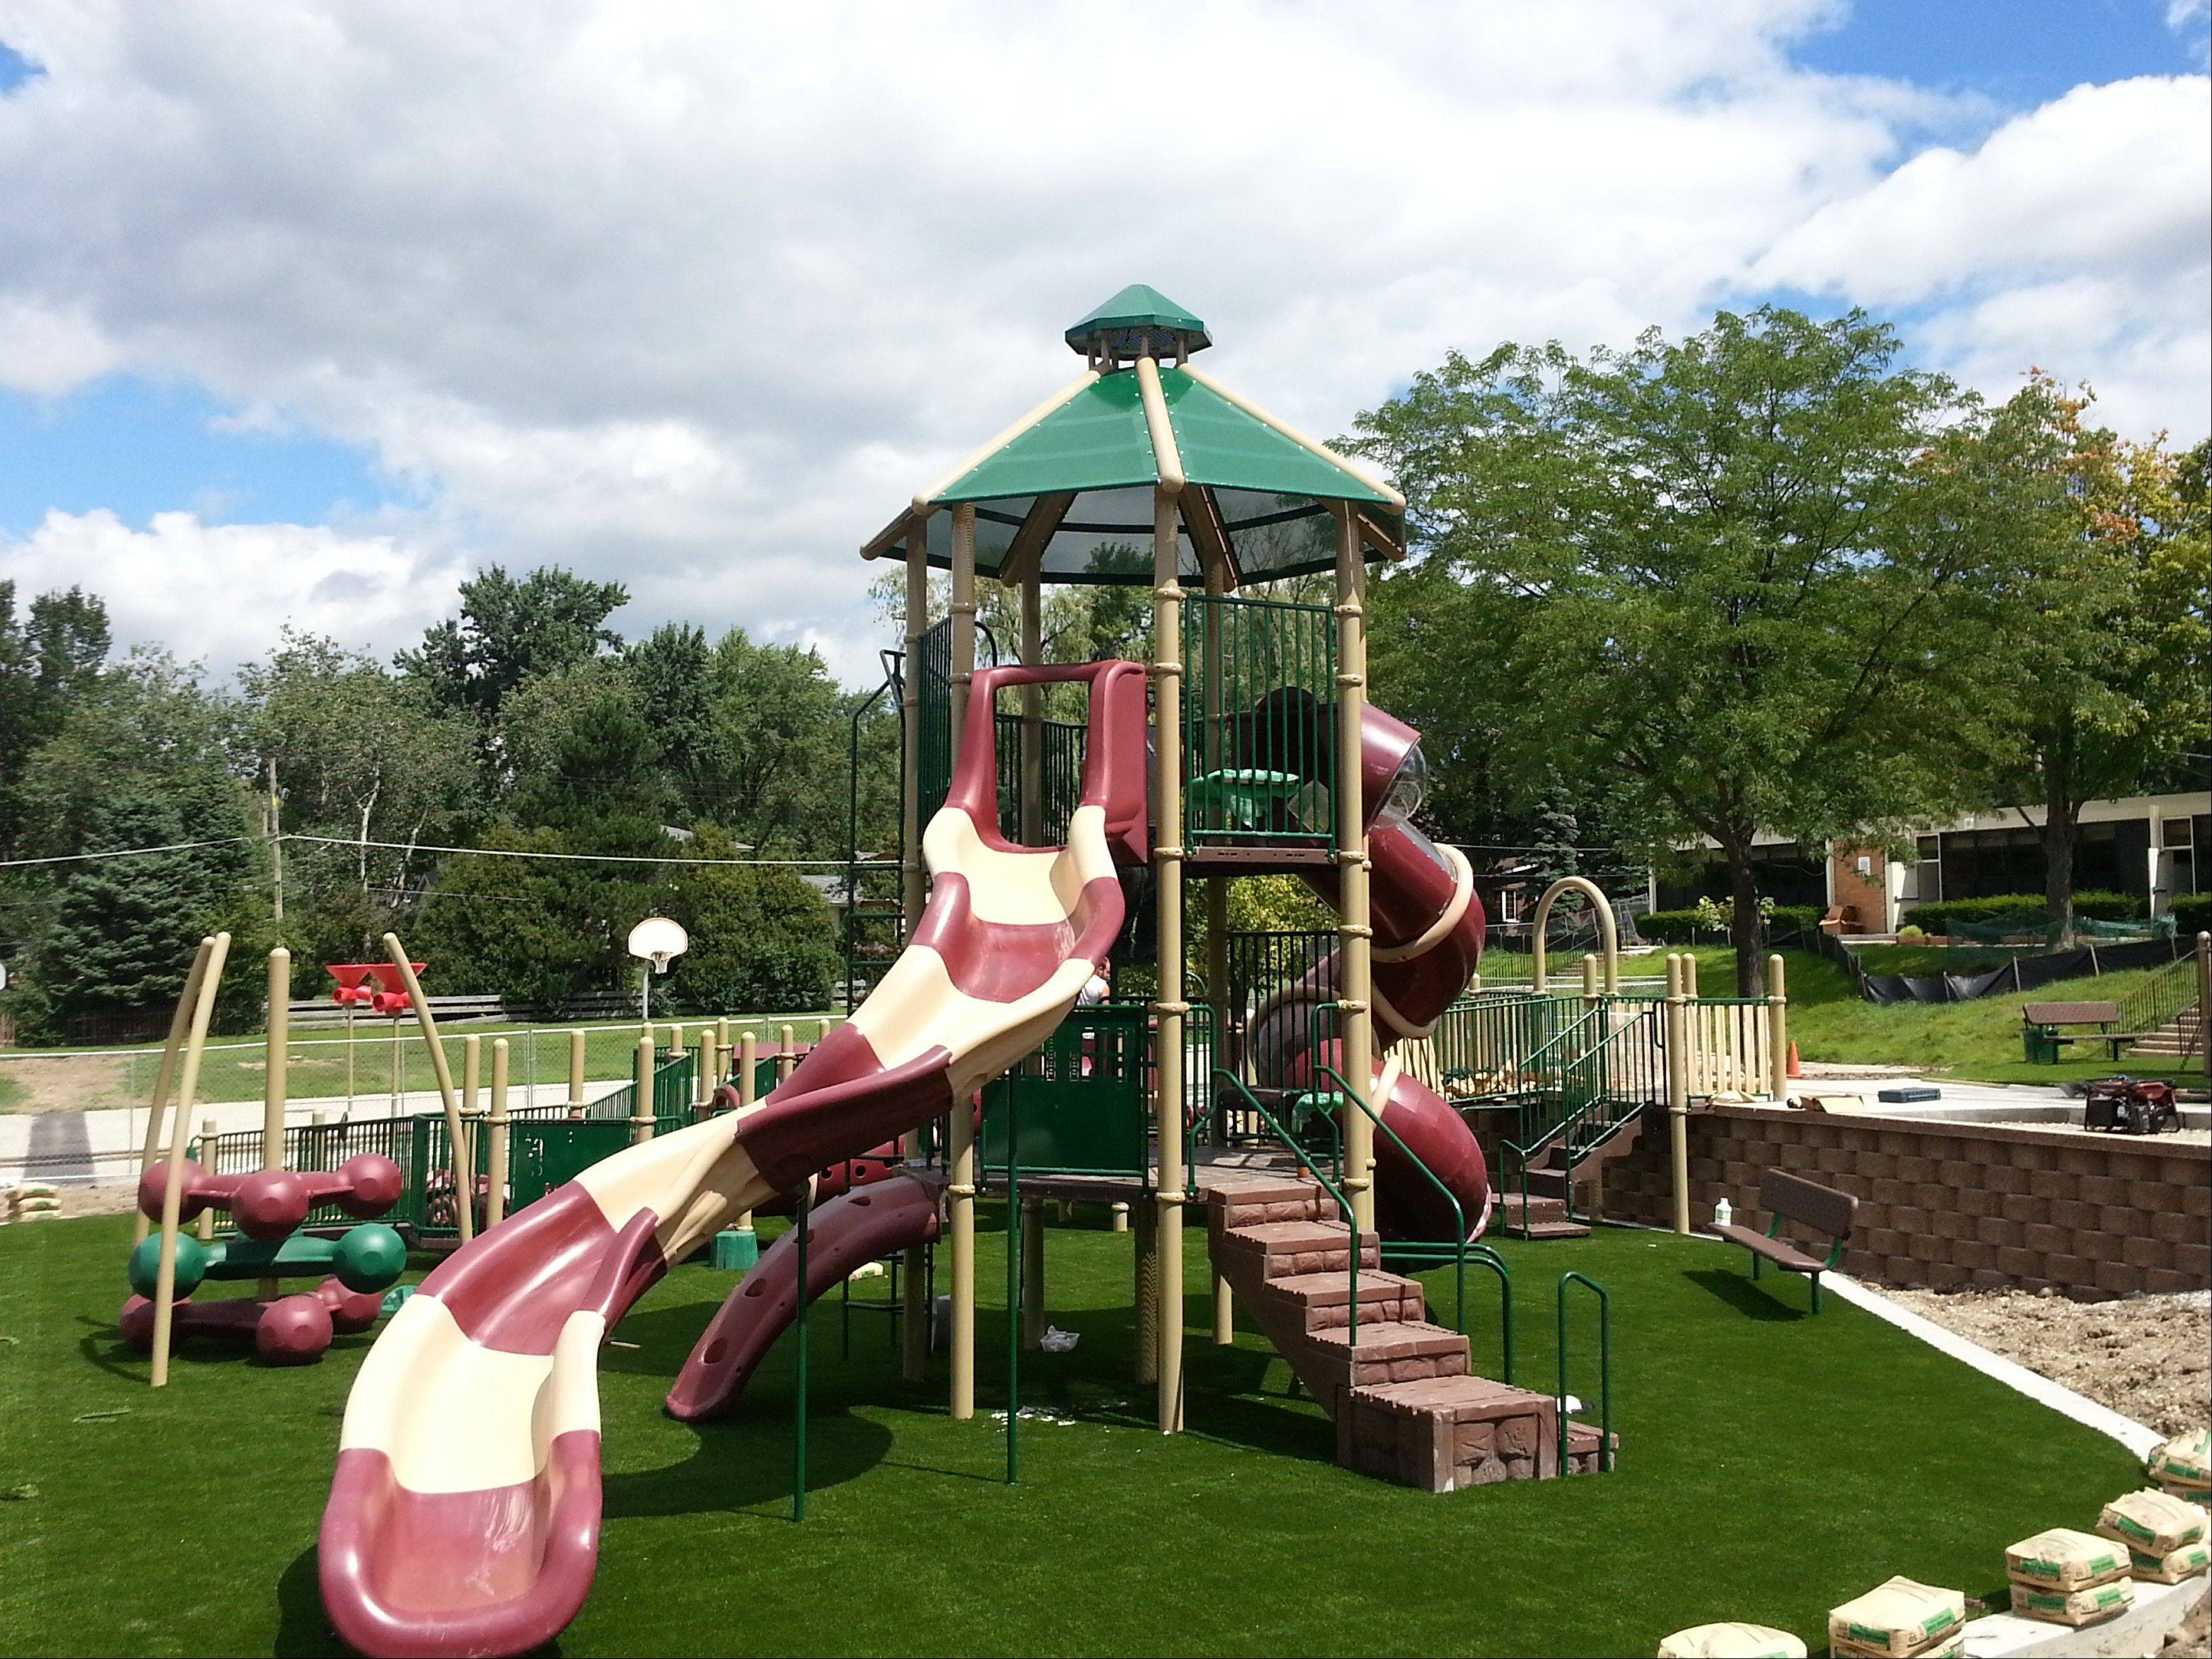 New playground equipment has been installed at Lincolnshire's Laura B. Sprague School.